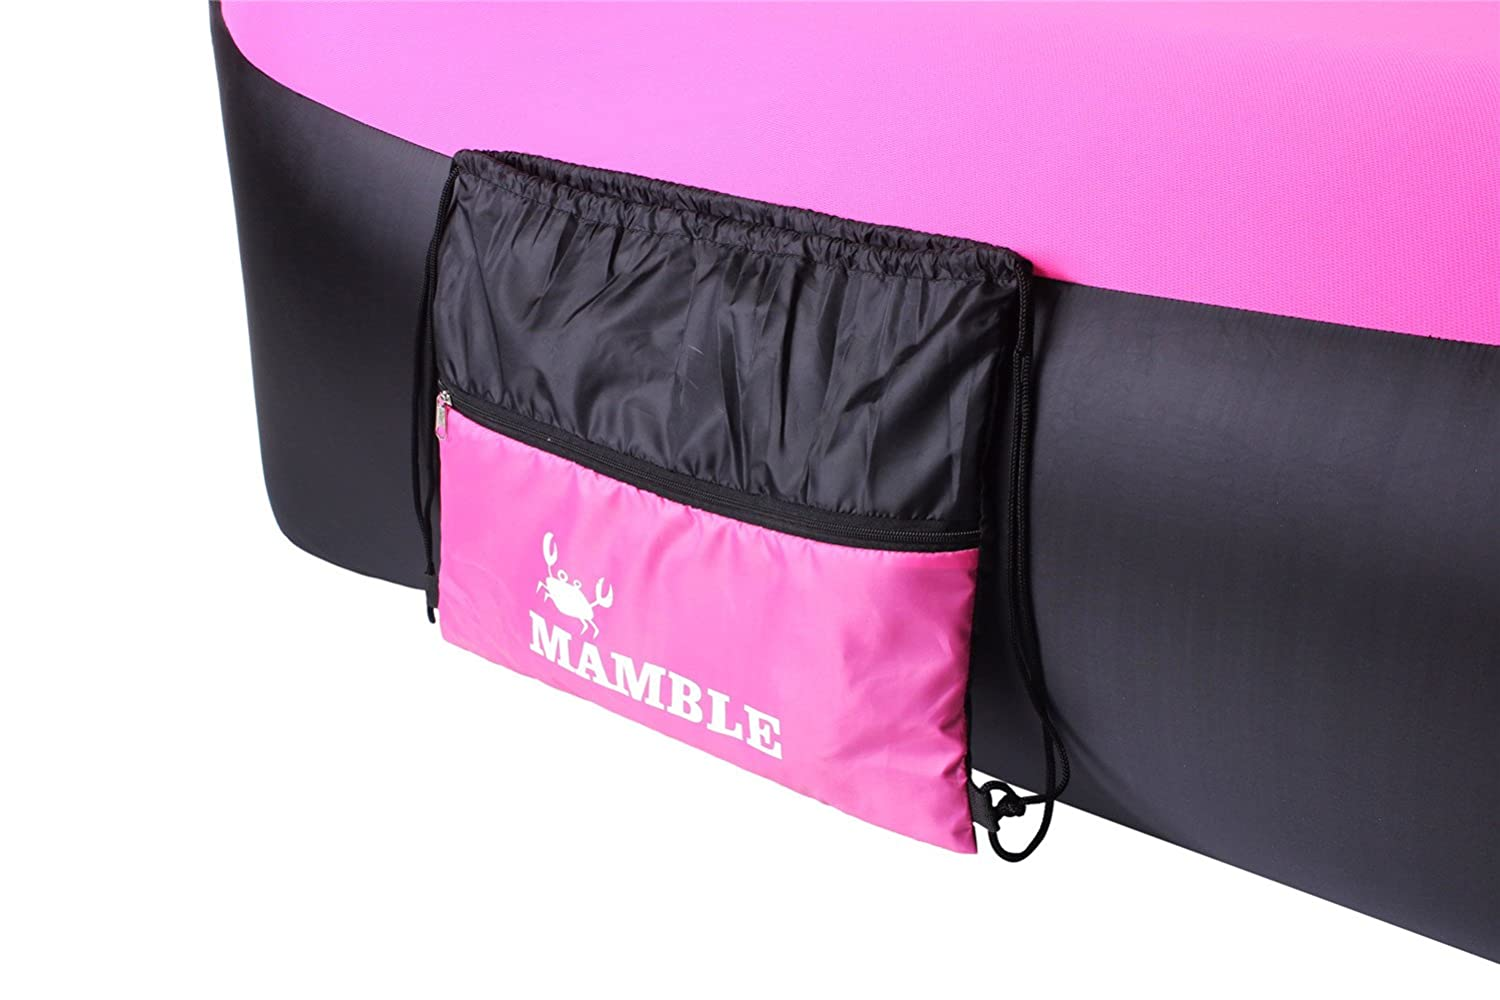 MAMBLE Inflatable Lounger Sofa Portable Sofa Bed Air Sofa for Travelling, Camping, Beach, Park